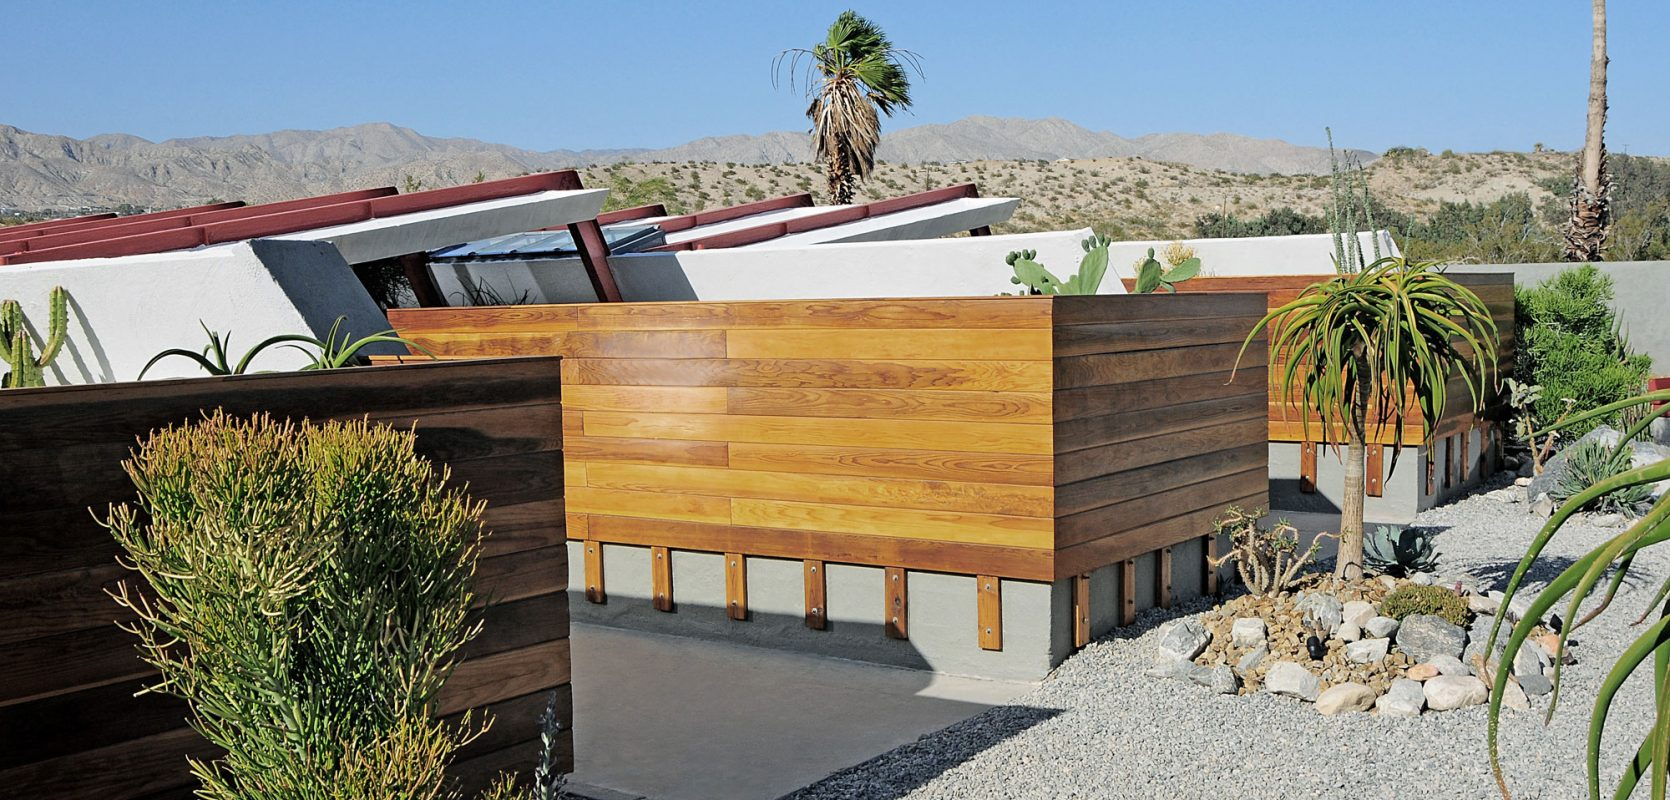 wood clad ranch style homes connected in a desert landscape and gravel drive